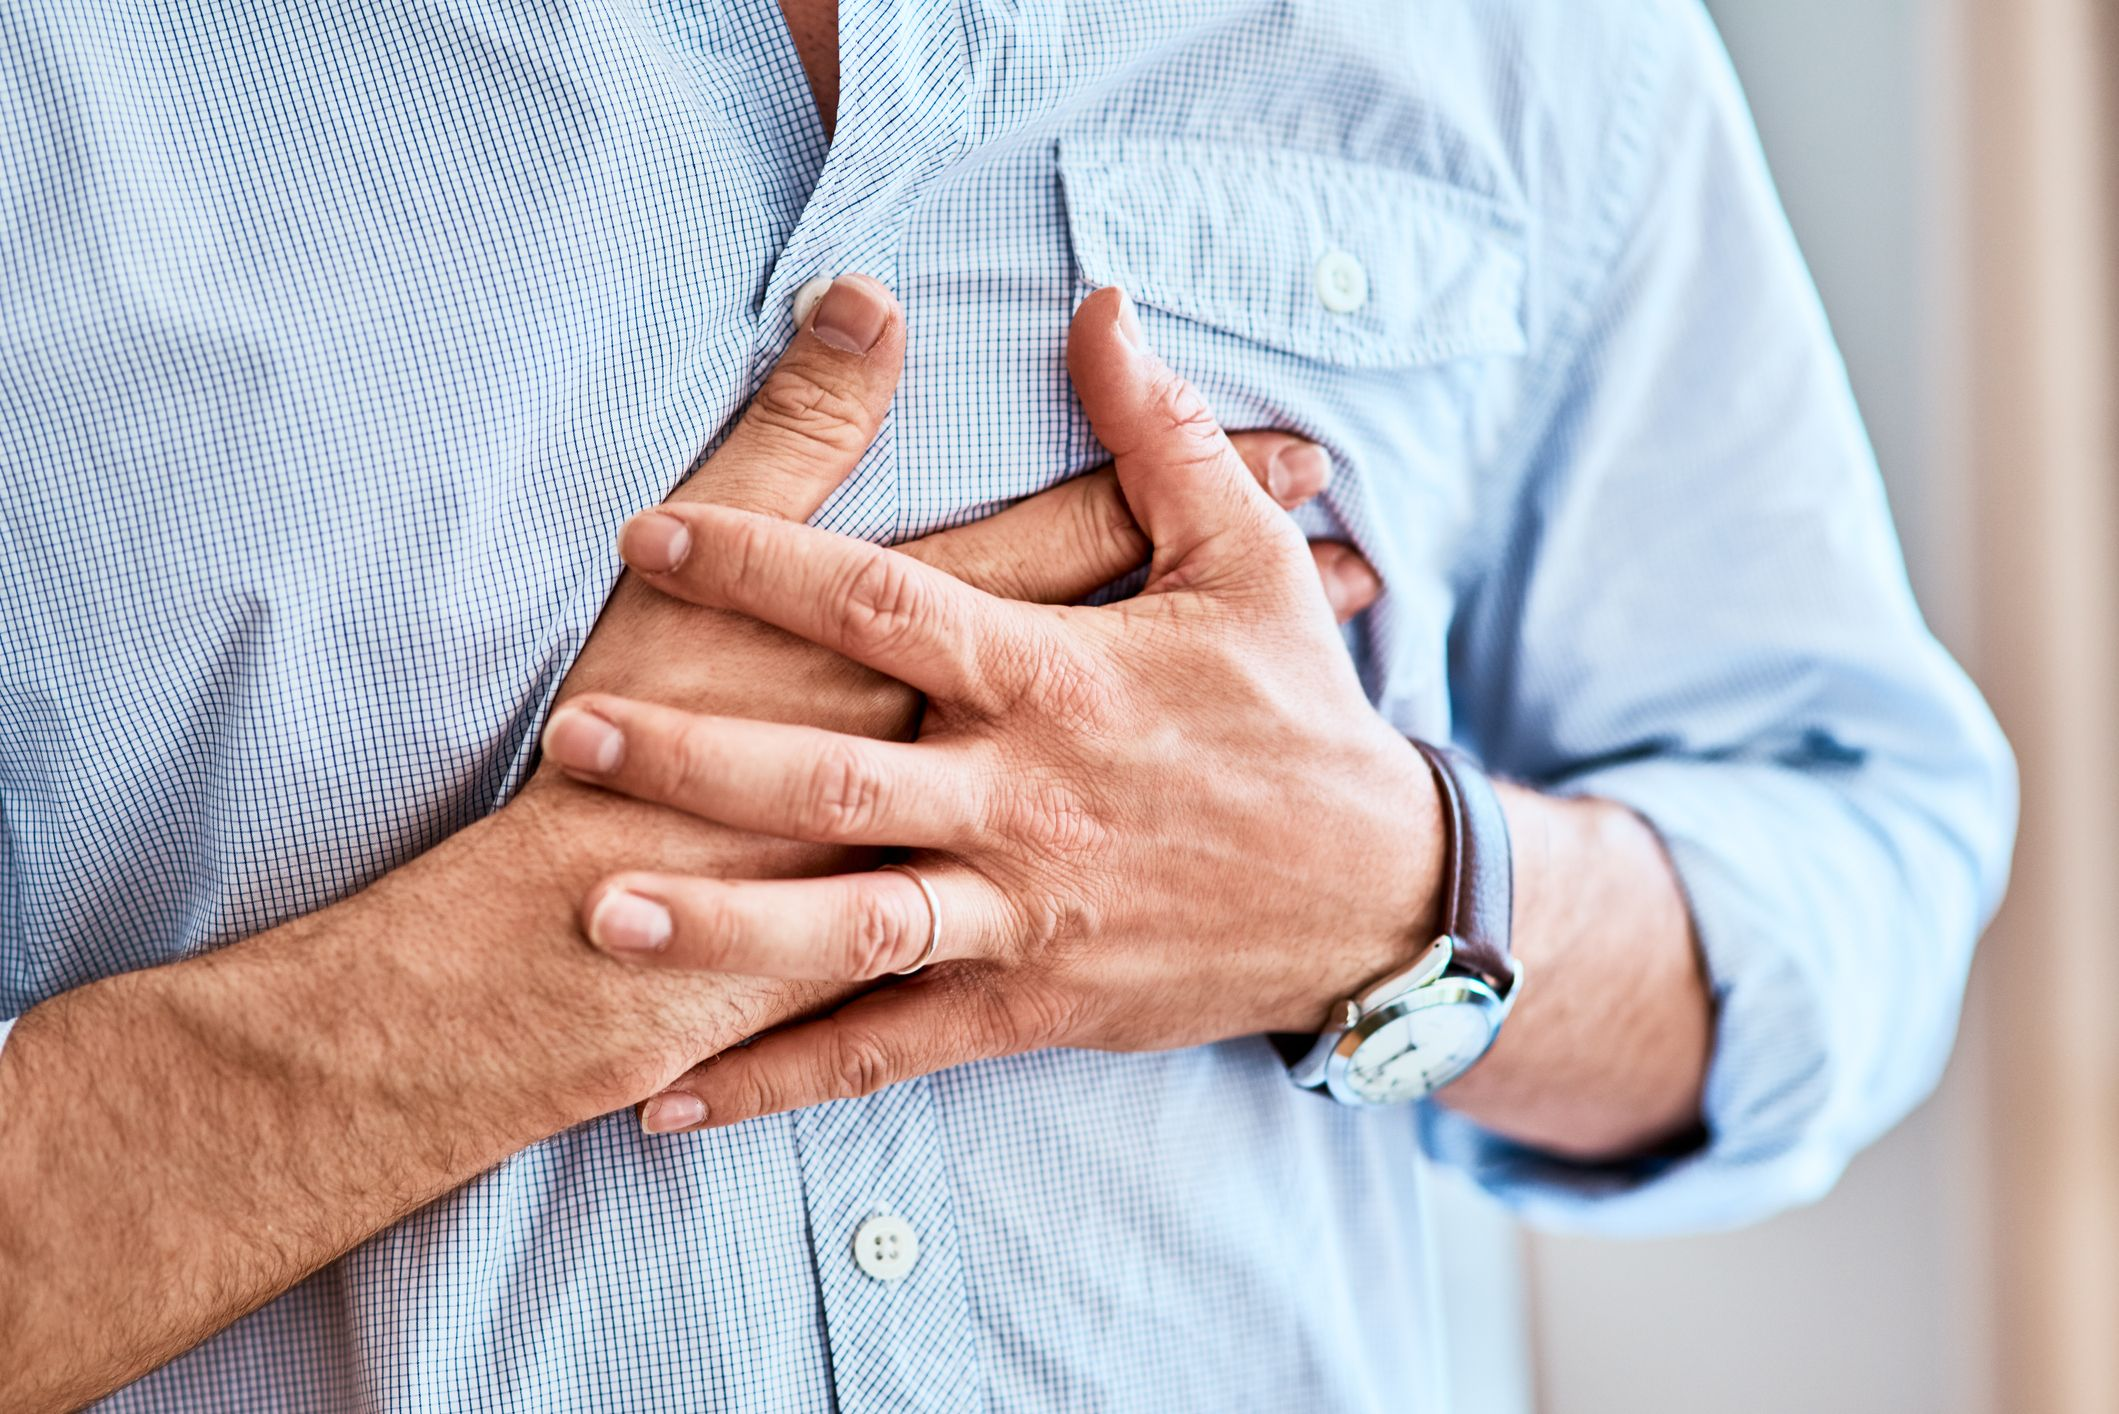 Would You Know If You're Having a Heart Attack? Here's What to Look out For